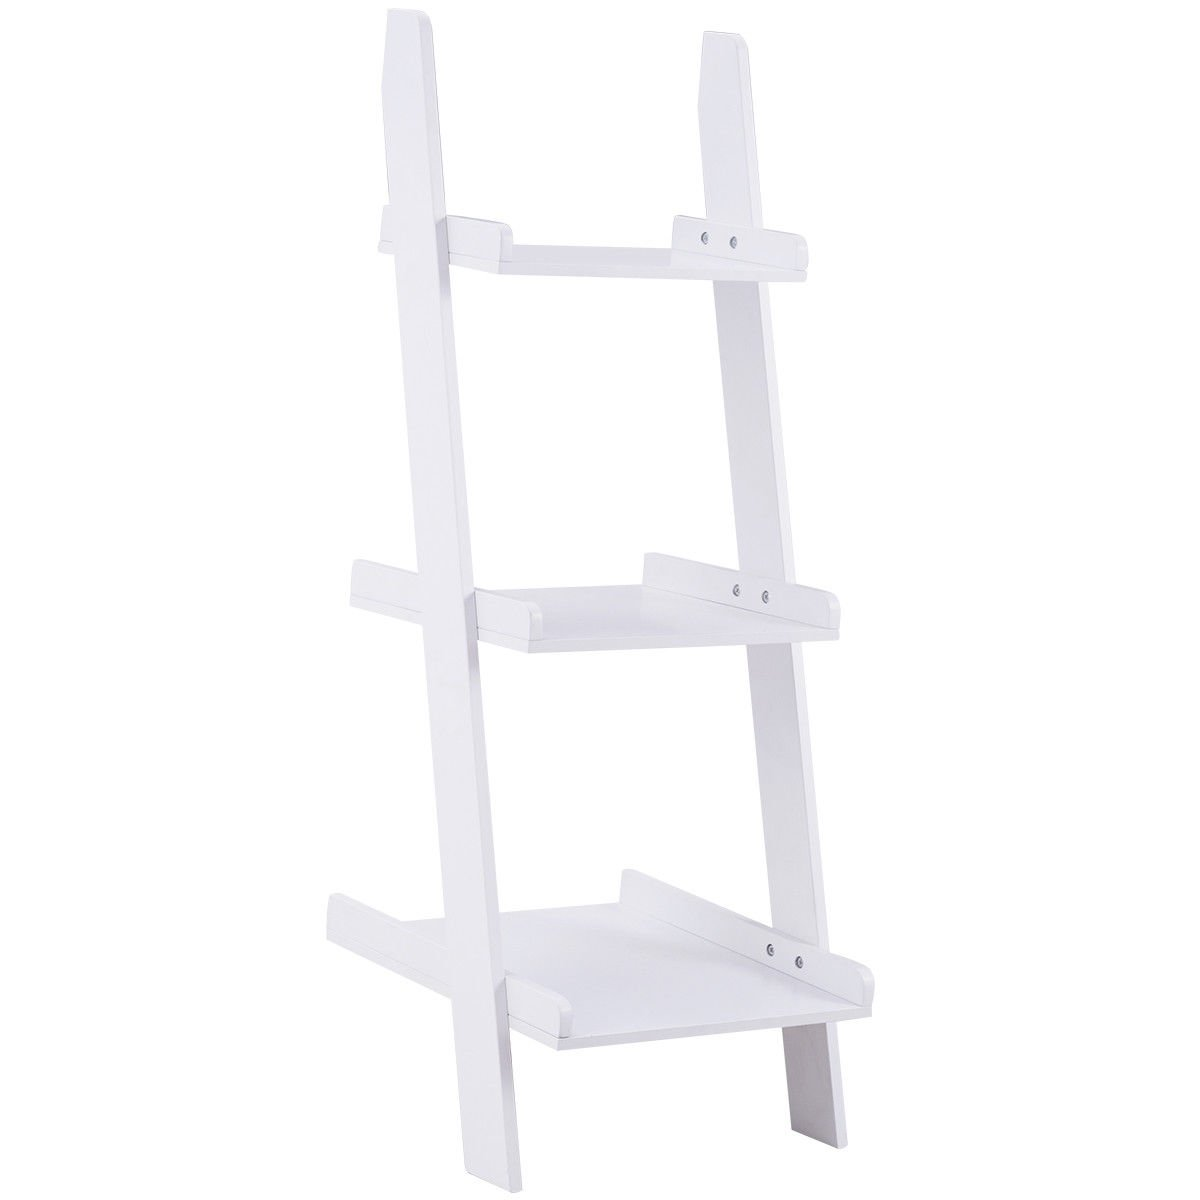 Giantex Ladder Shelf 3-Tier Wall-Leaning Bookshelf Ladder Bookcase Storage Display Shelf for Home and Office, Multipurpose Plant Flower Stand Shelf, White by Giantex